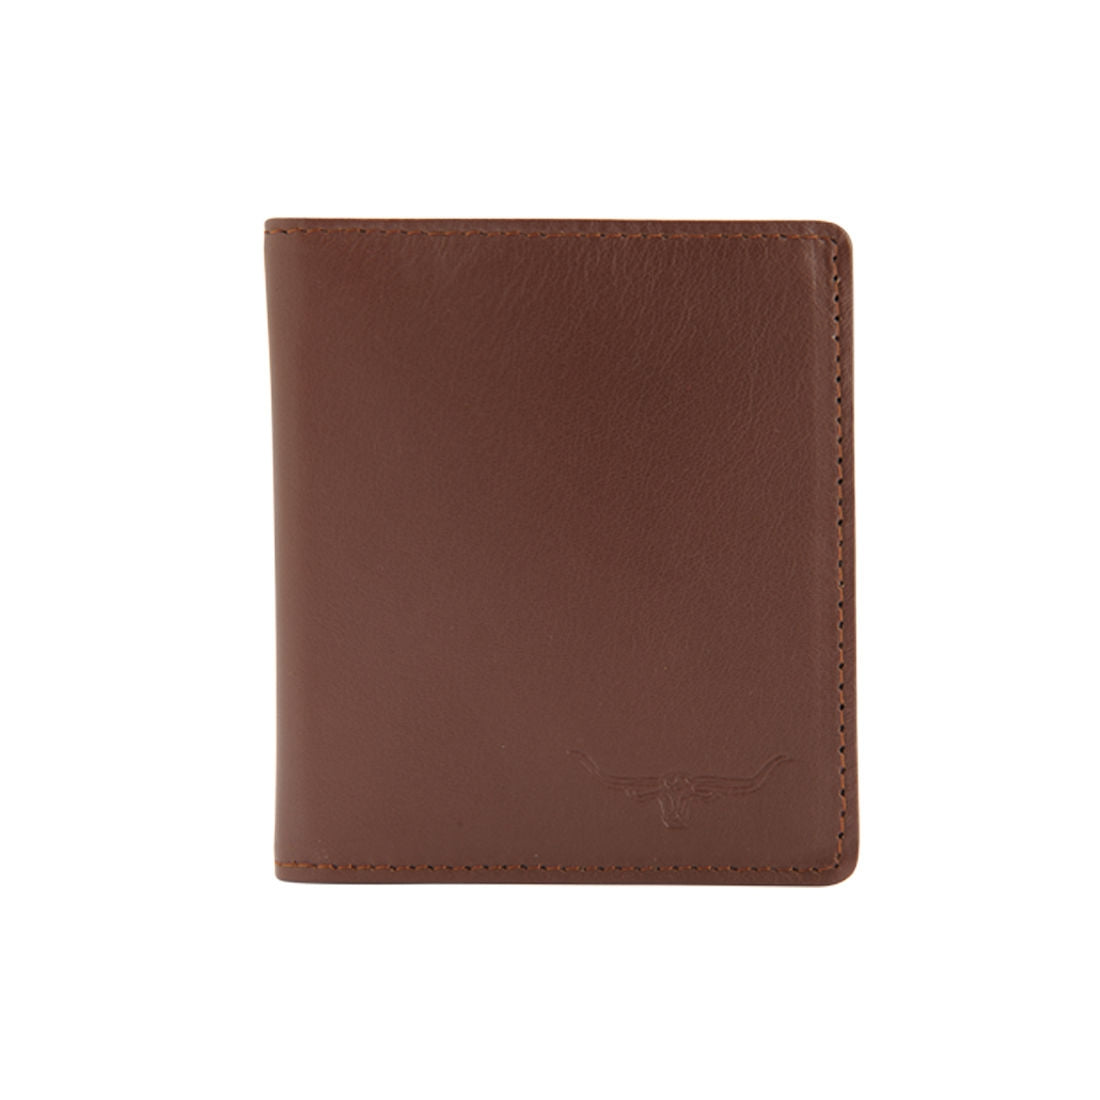 RM Williams Tri Fold Kangaroo Wallet (4498385076361)